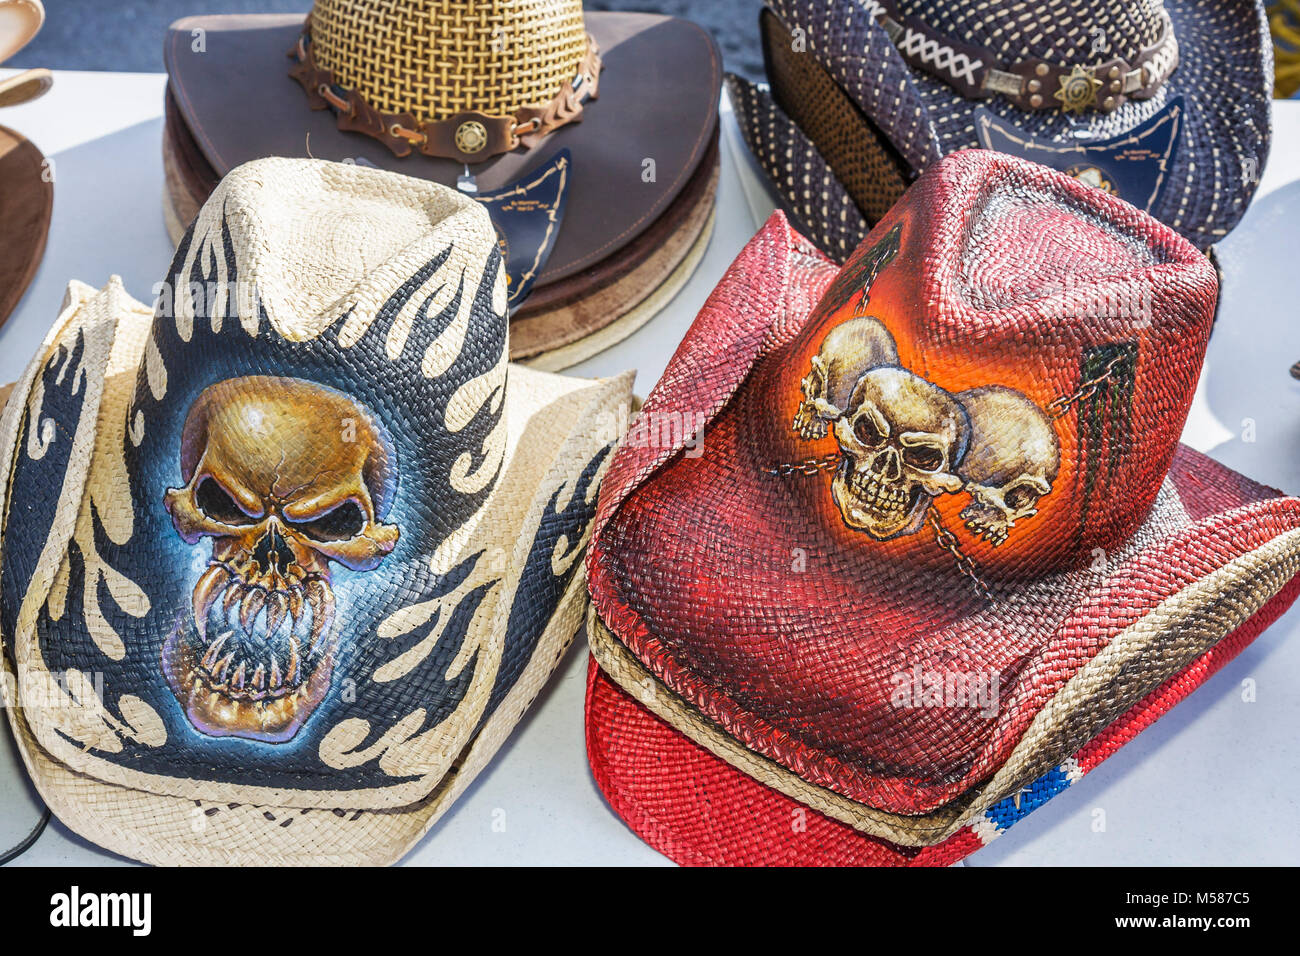 Homestead Route 1 One Farmers Market Western hats painted straw skulls  fashion b79363e010a